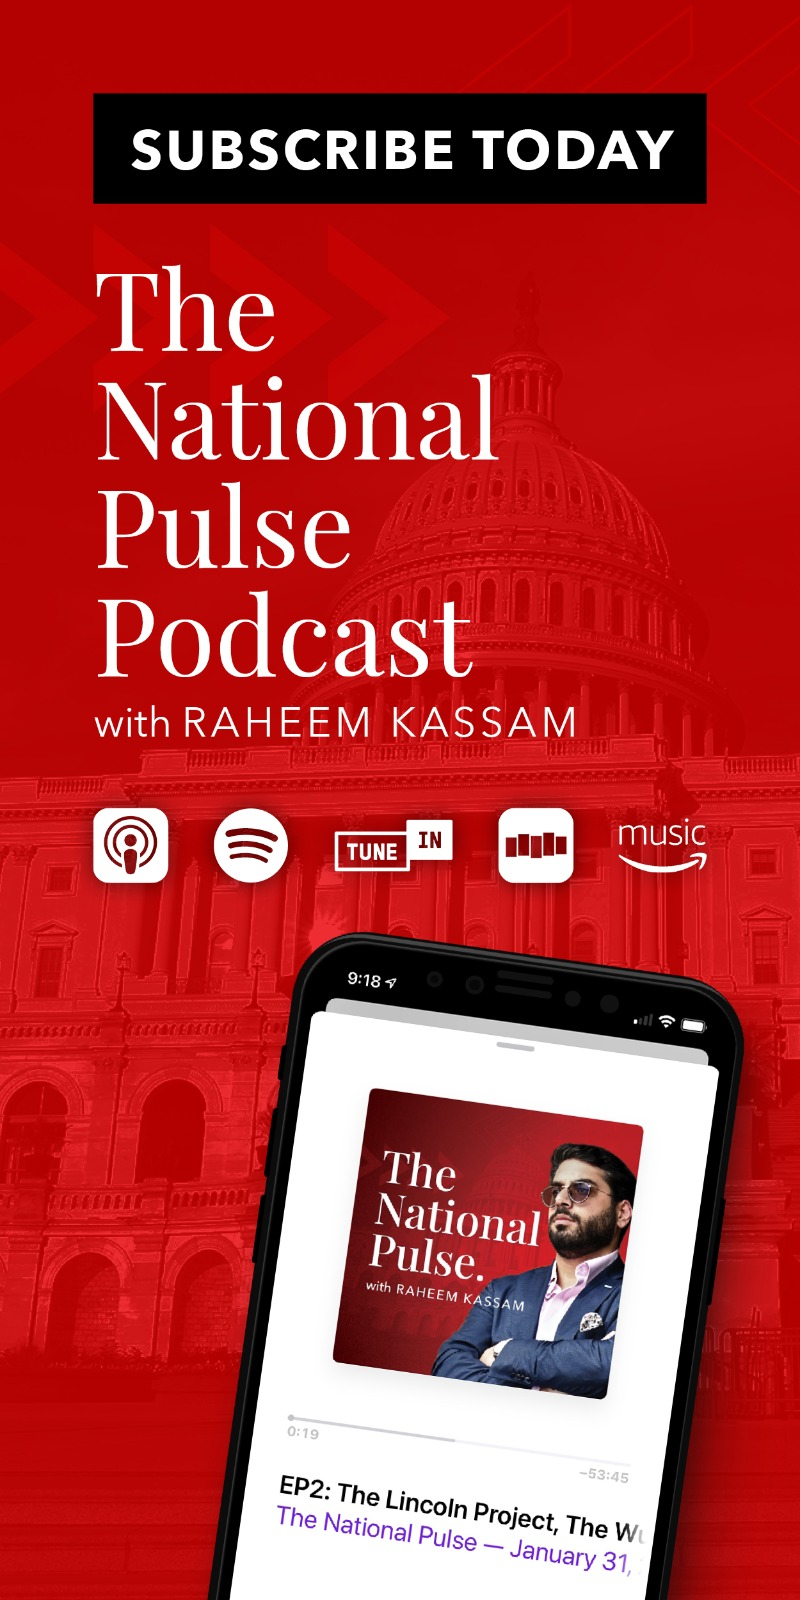 The National Pulse Podcast